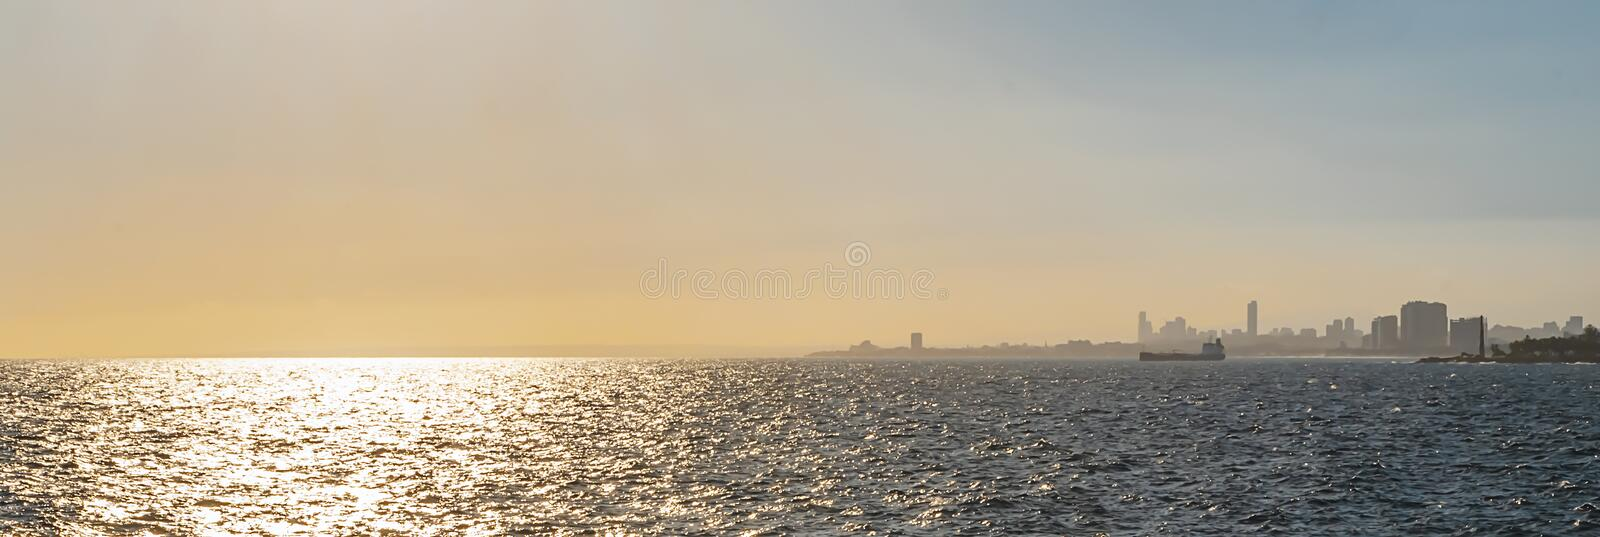 Caribbean sea view of Santo Domingo as golden tropical sunset royalty free stock photography